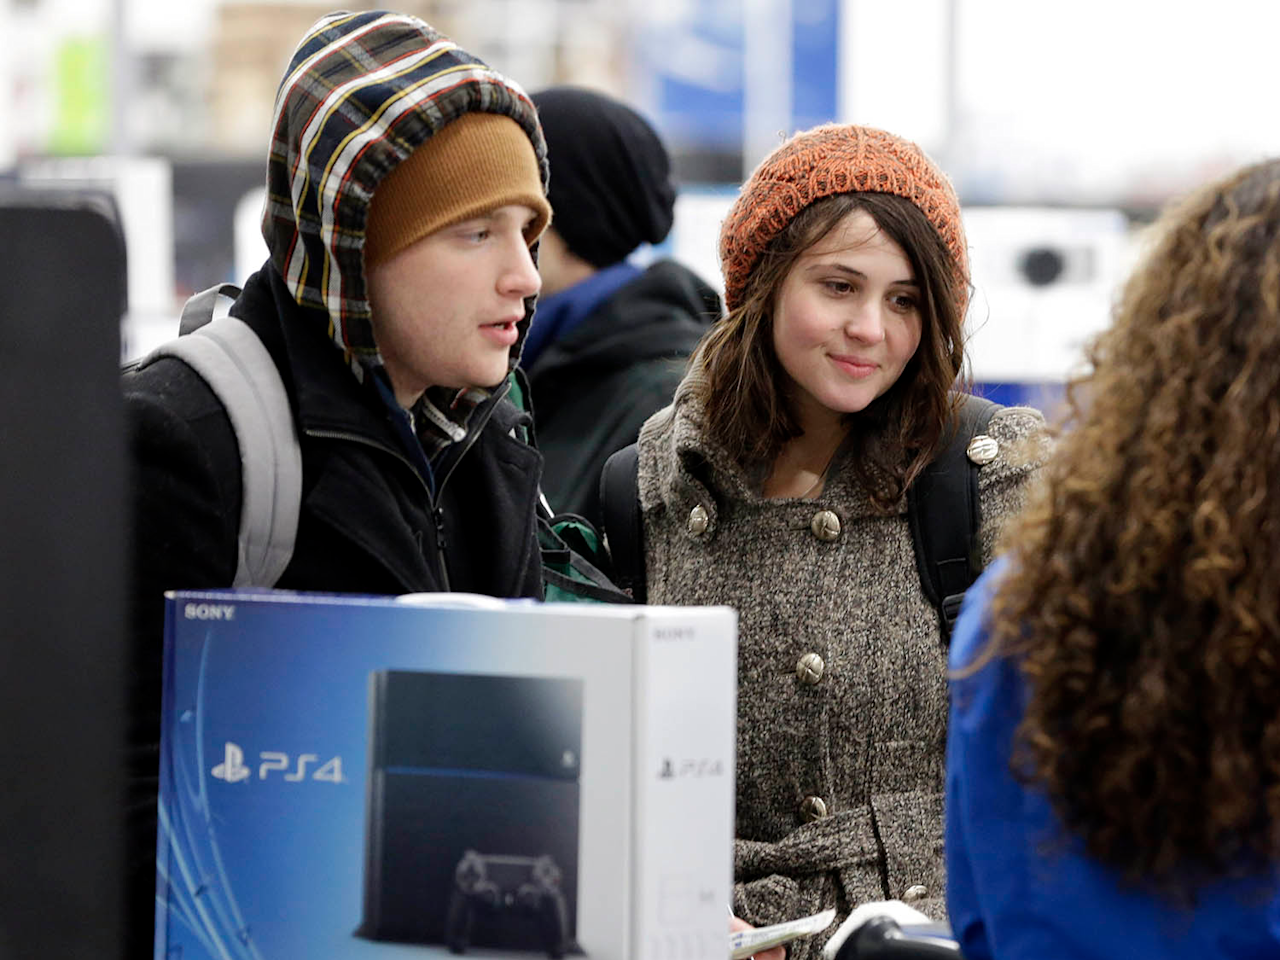 There's a 'dumb reason' why PlayStation and Xbox gamers can't play online together, according to a former Sony insider